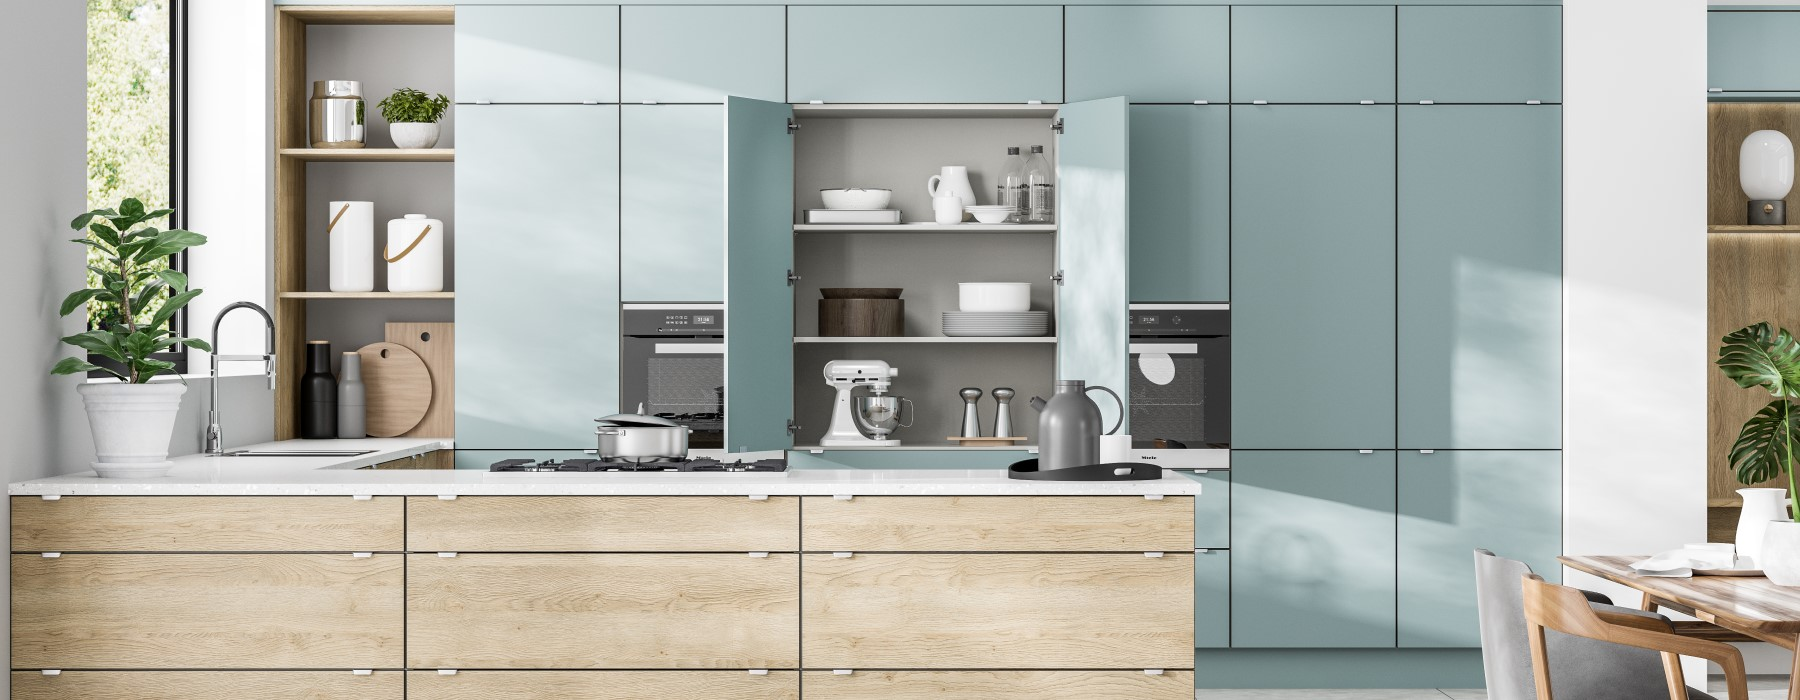 Clyde Kitchens Glasgow, Quality Kitchen Supplier and Fitter